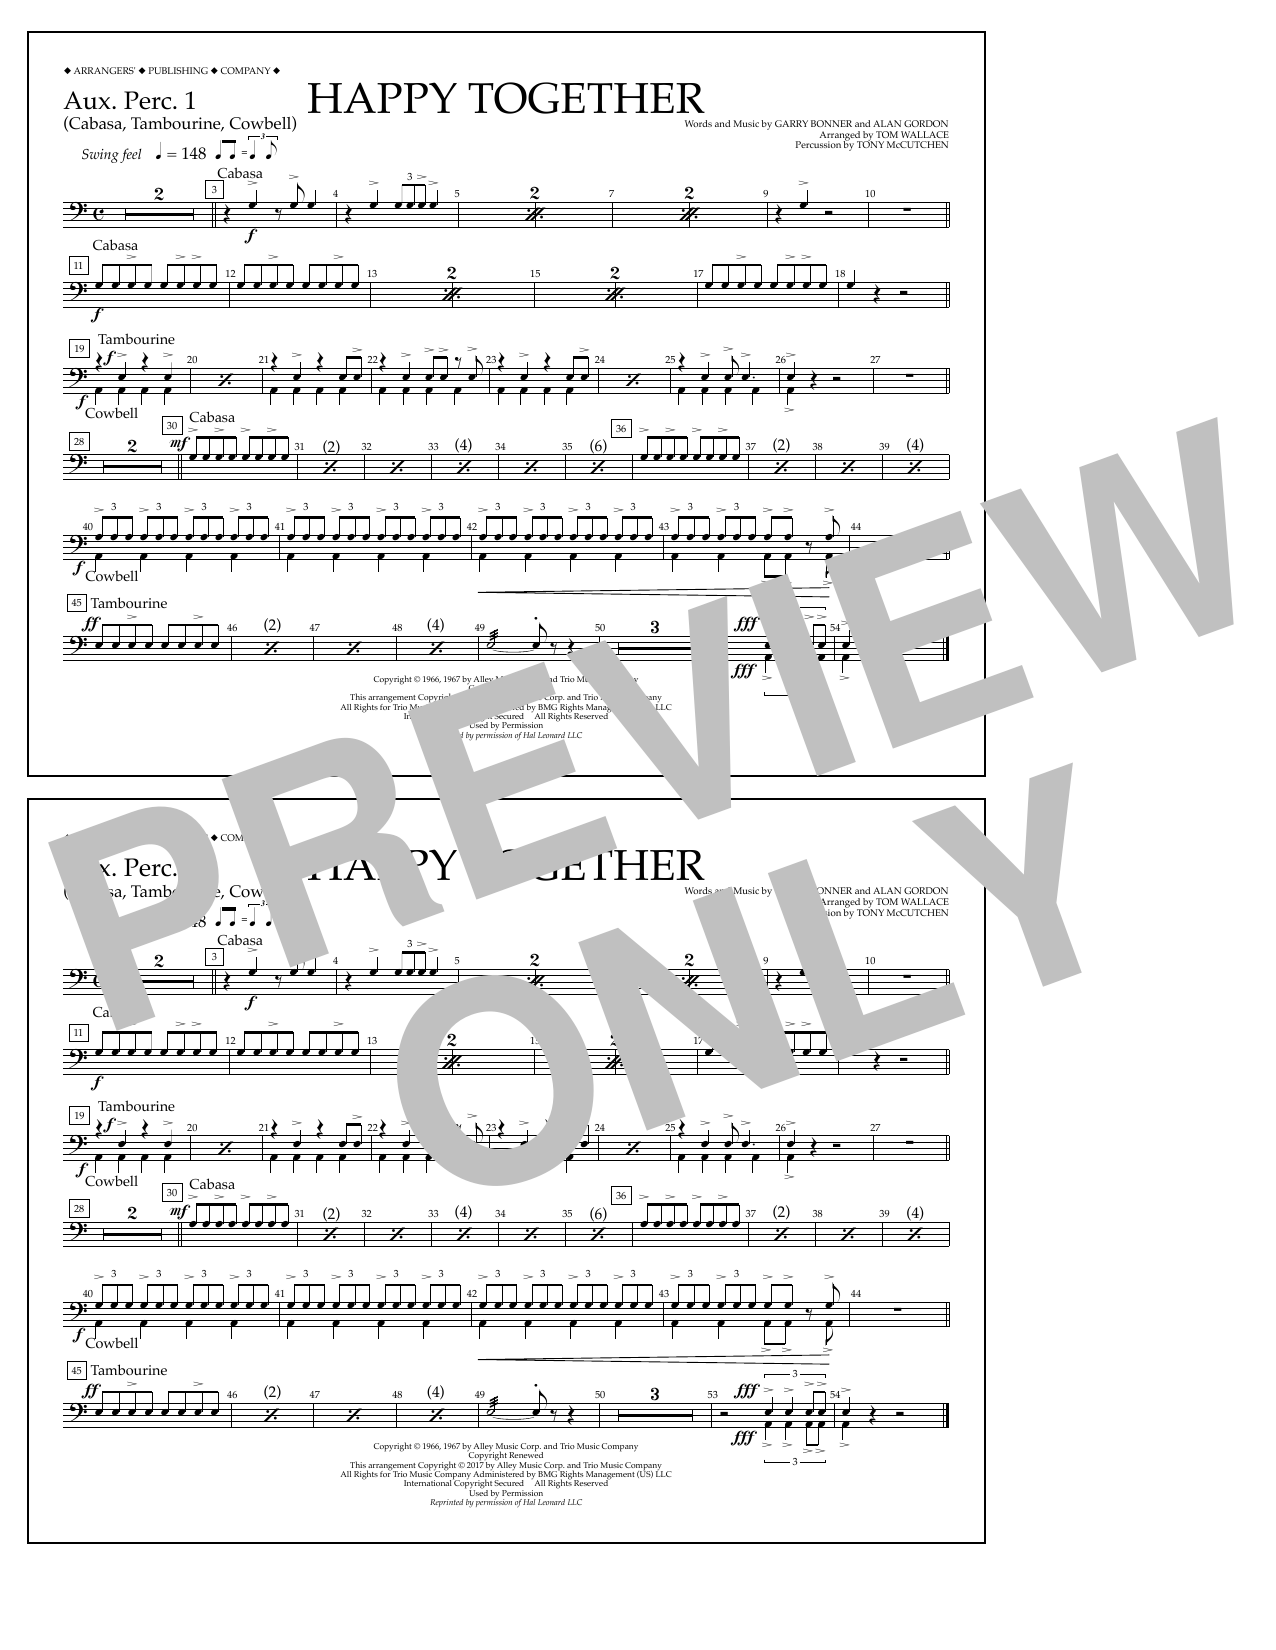 Happy Together - Aux. Perc. 1 Sheet Music